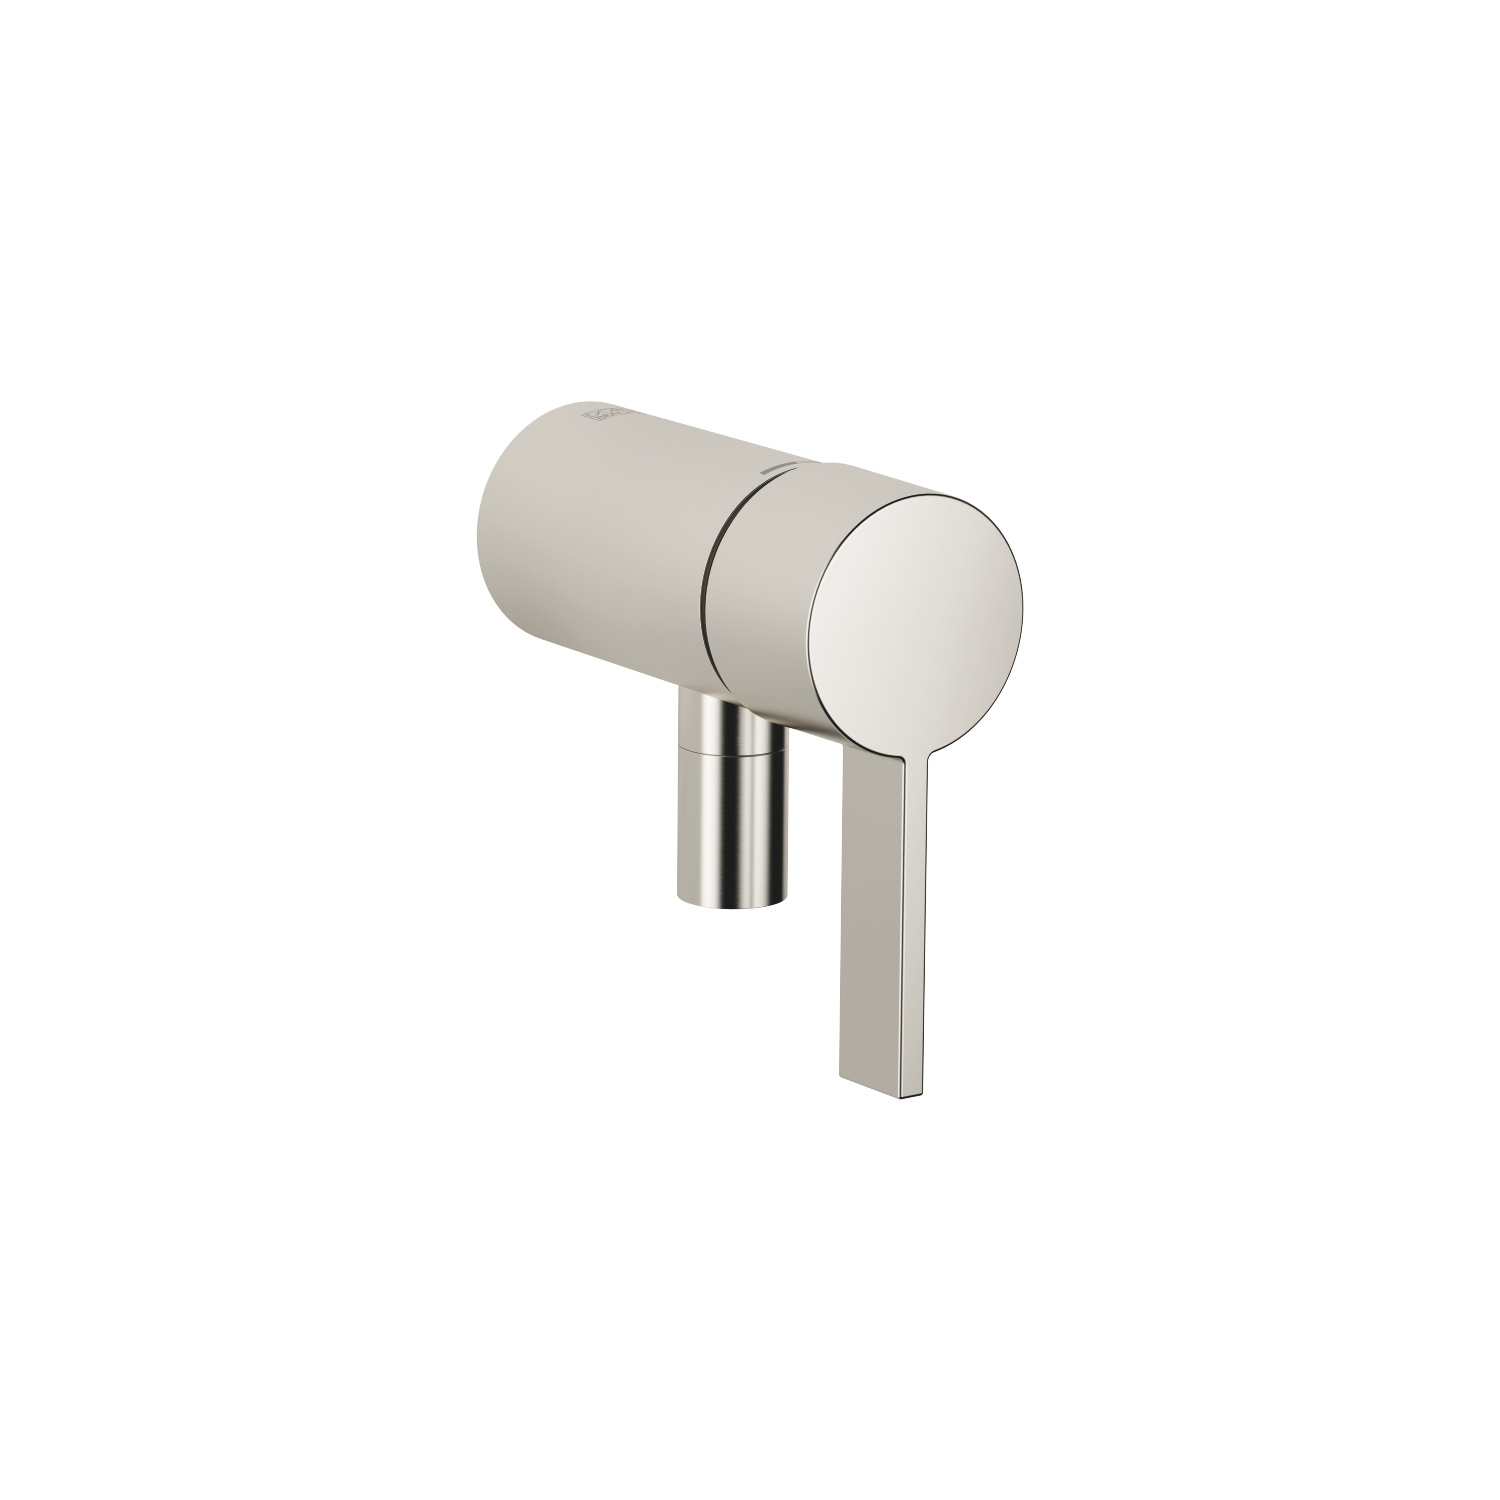 Concealed single-lever mixer with integrated shower connection - platinum matt